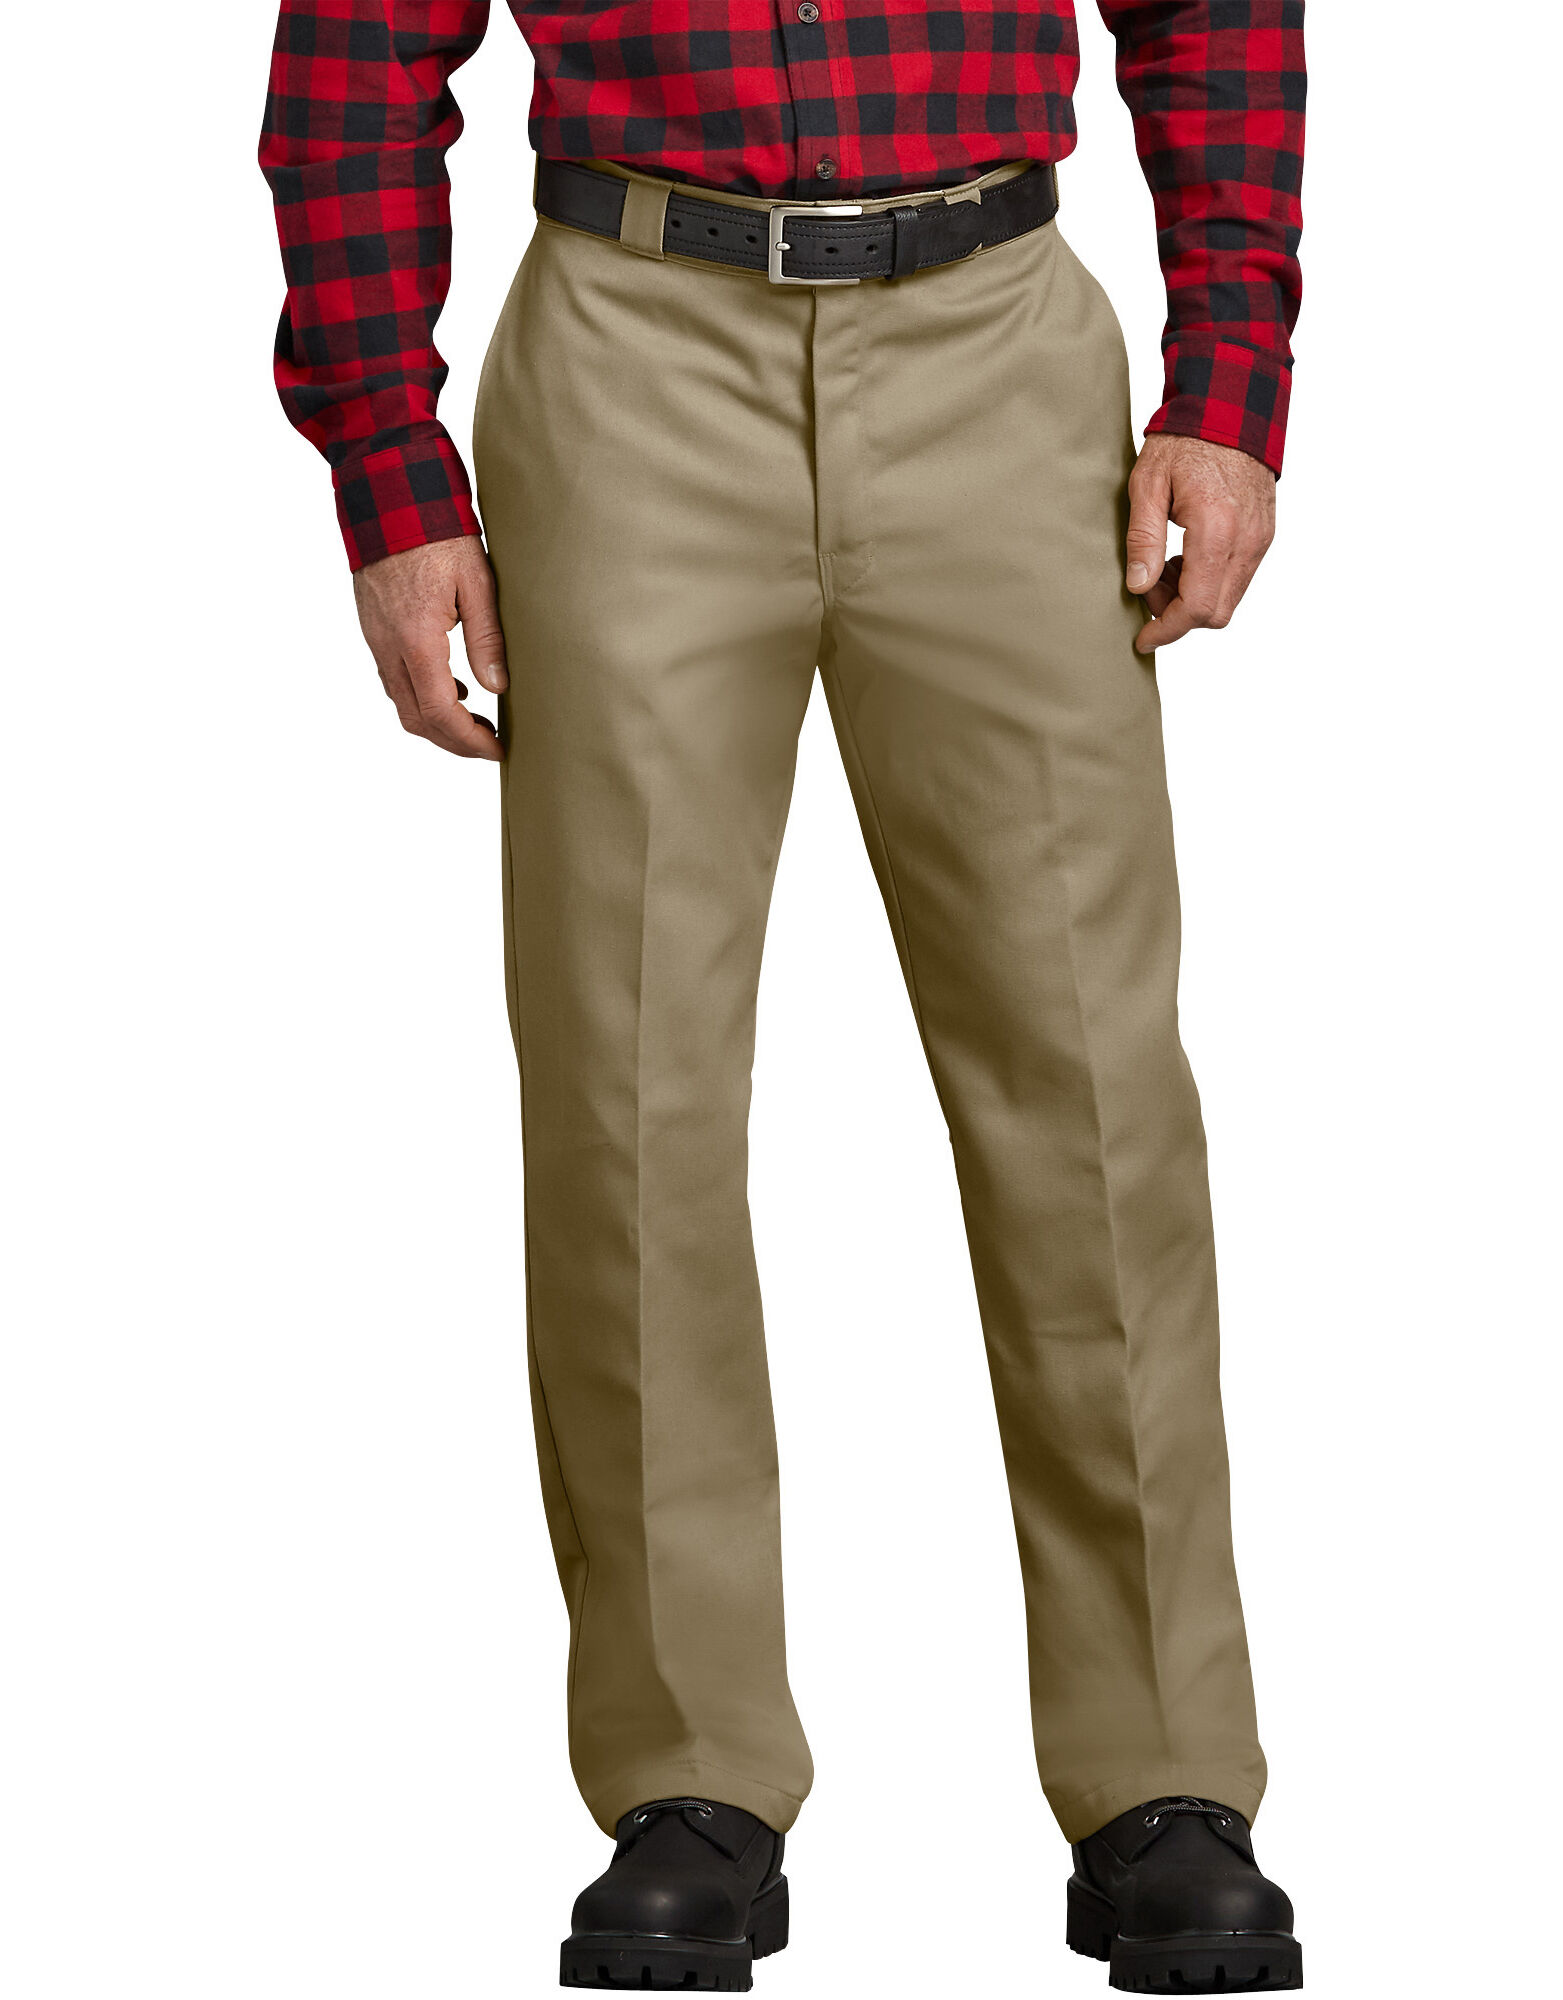 Relaxed Fit Flannel Lined Work Pants Mens Dickies